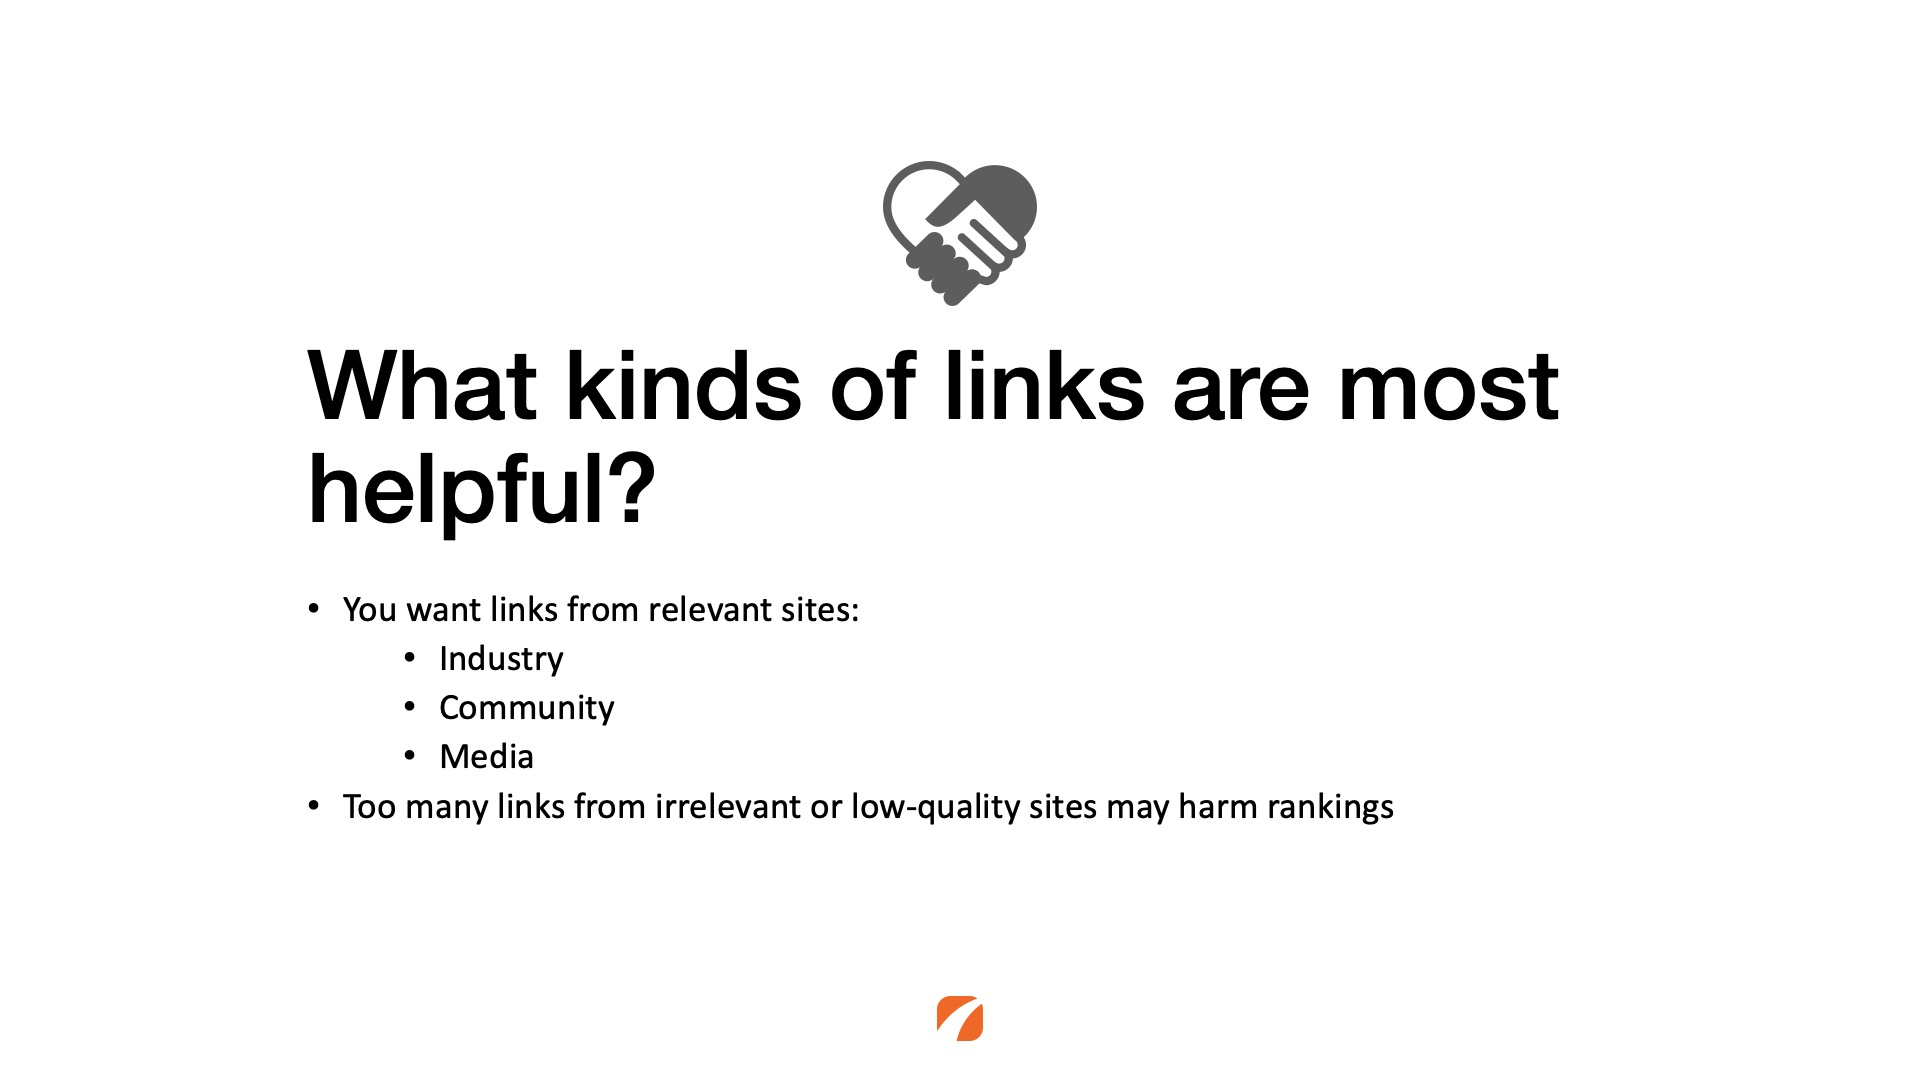 Types of backlinks that are the most helpful